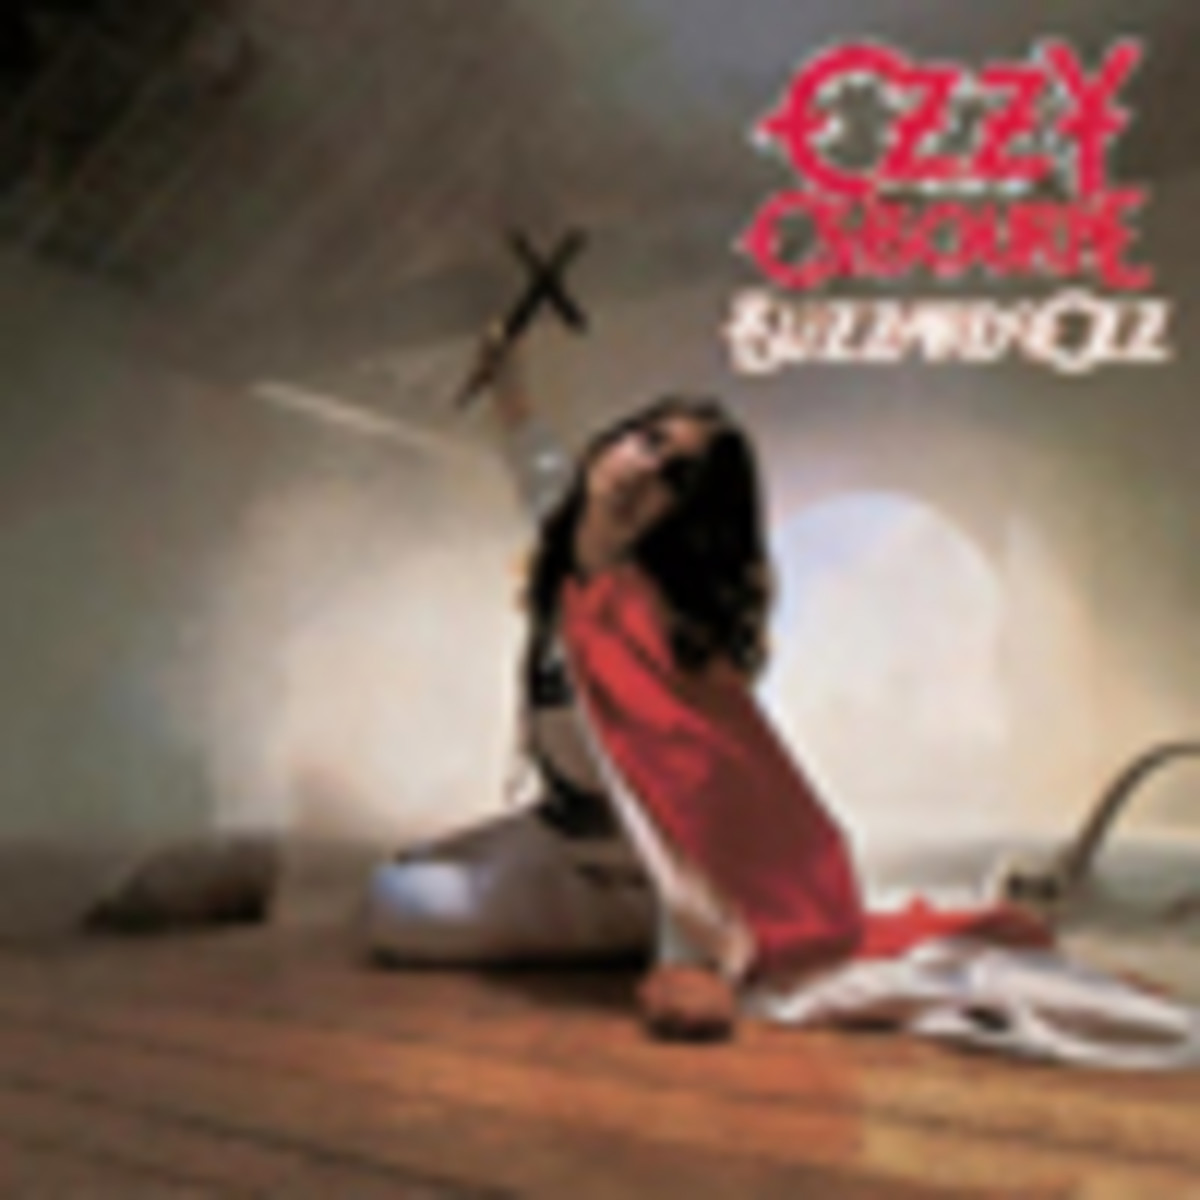 Ozzy Osbourne Blizzard of Ozz